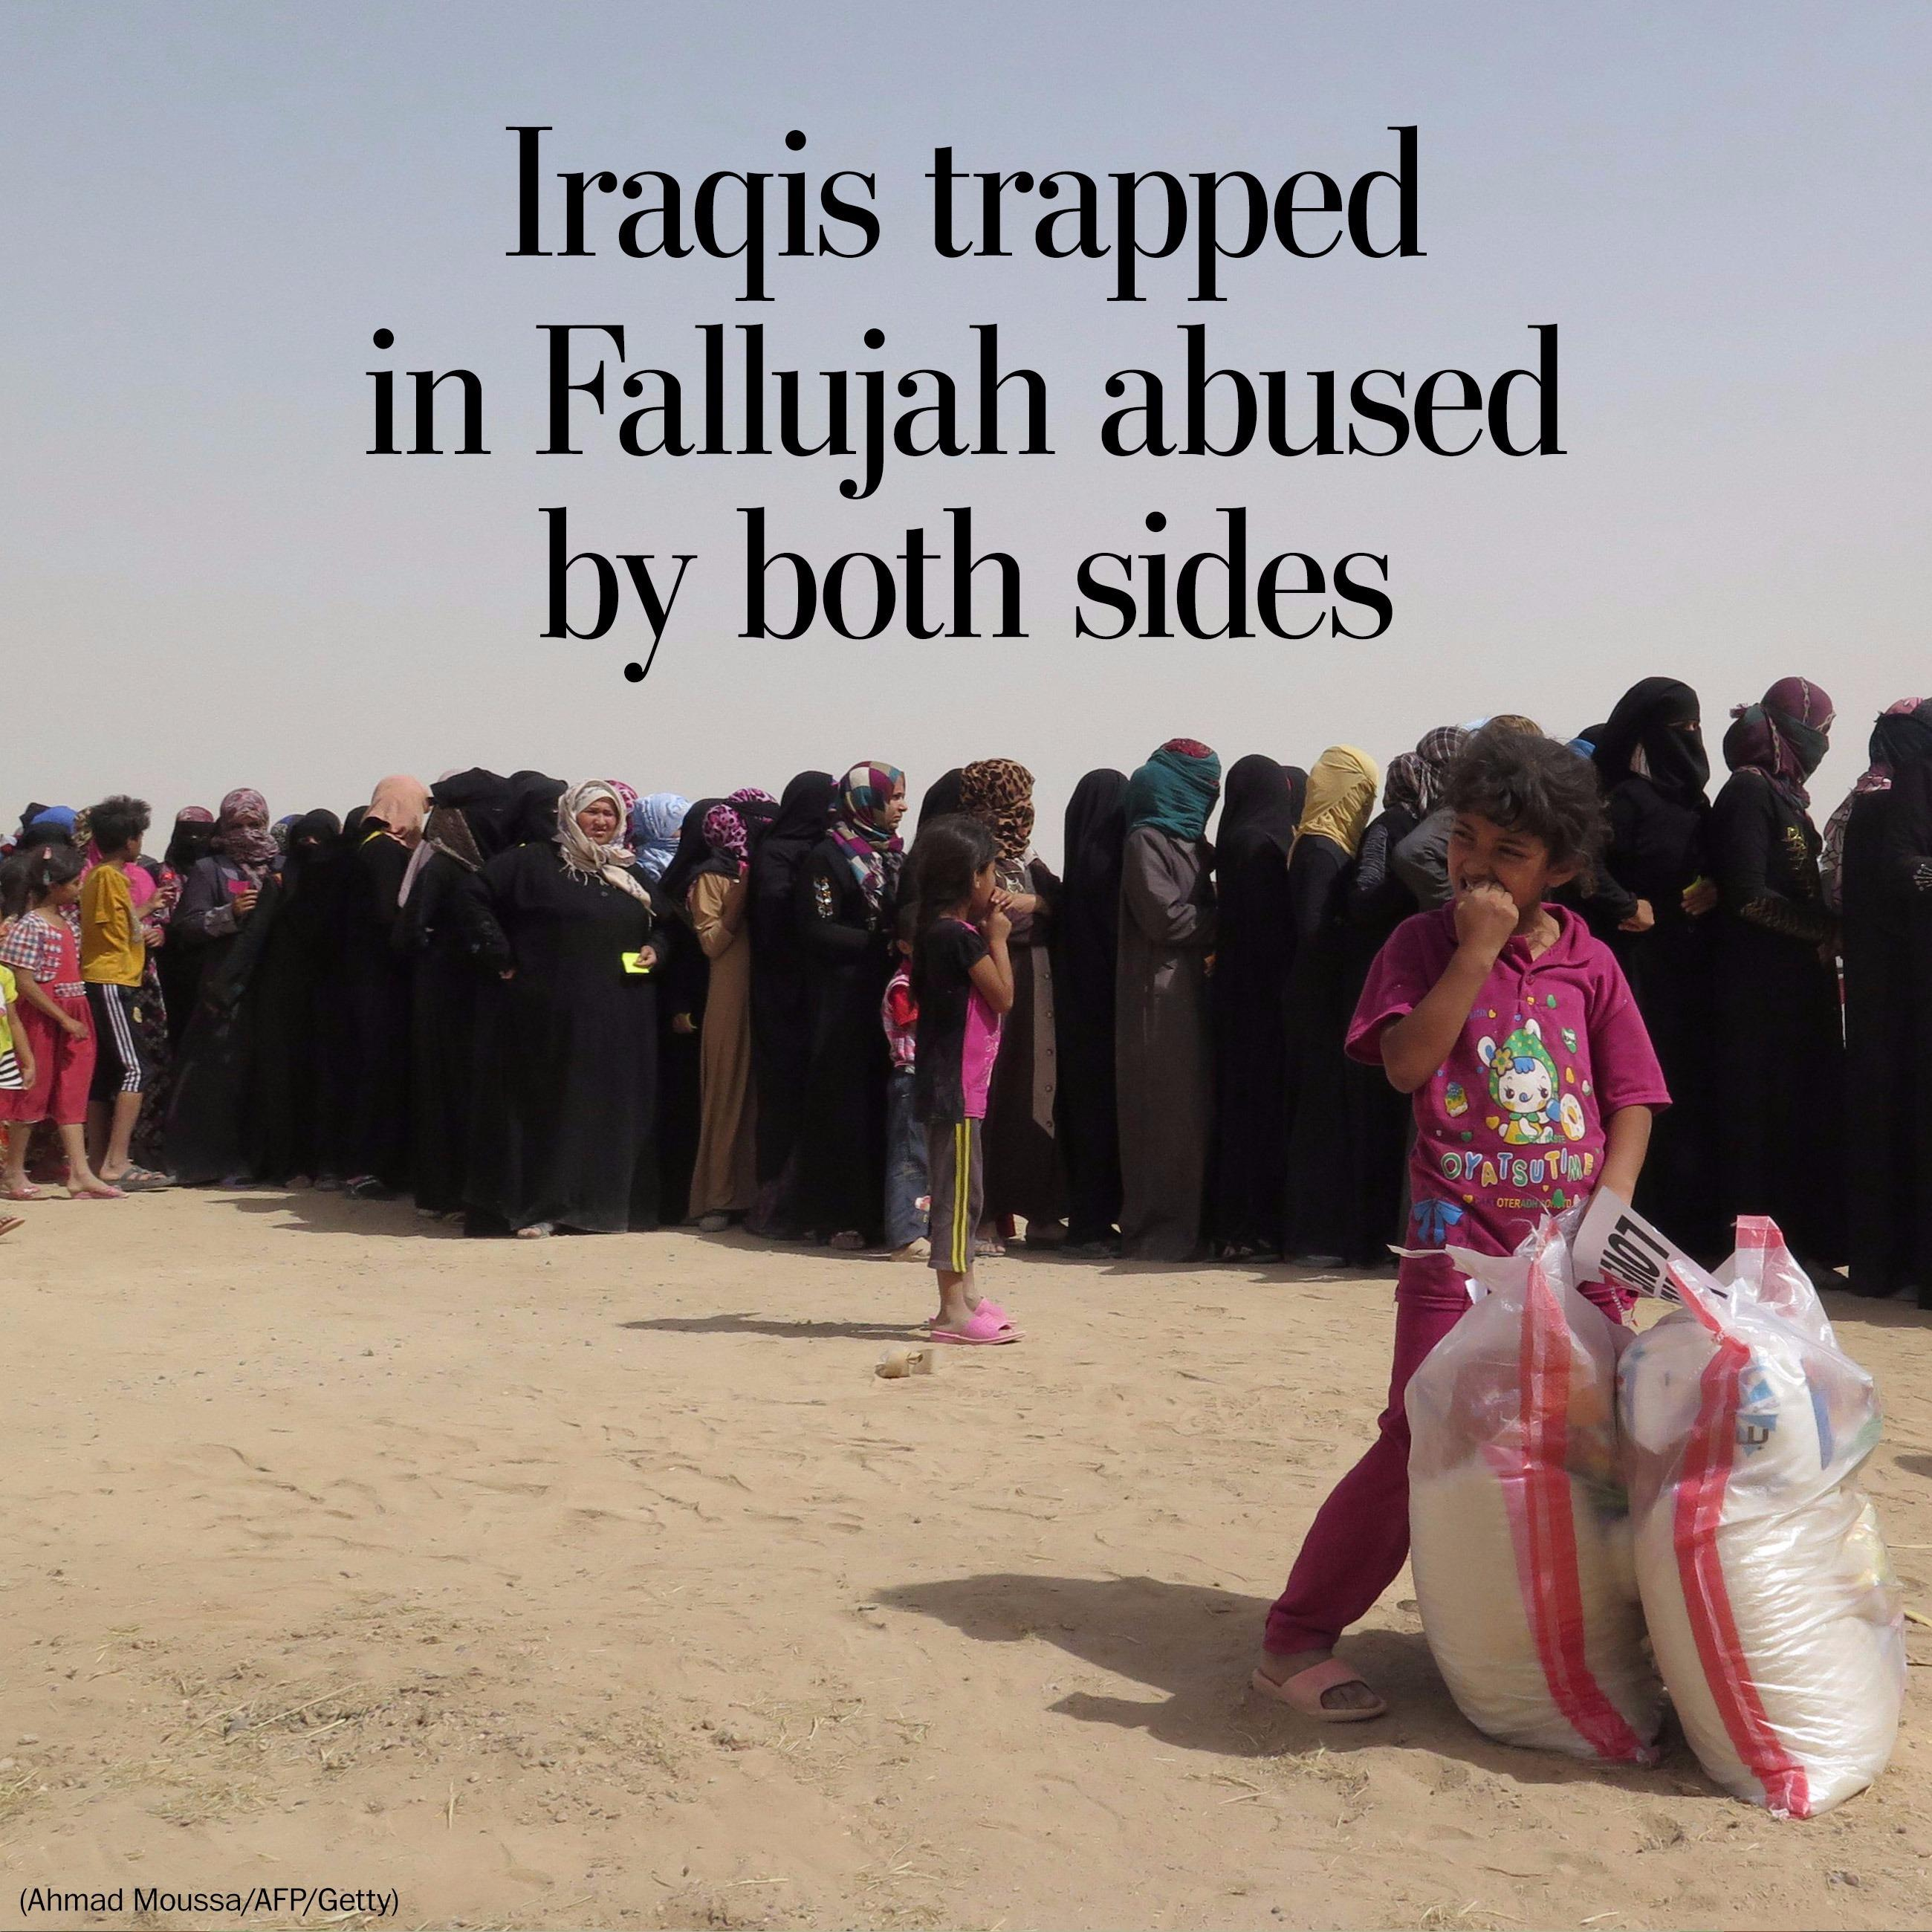 Iraqis in Fallujah caught in perils between Islamic State and militia fighters